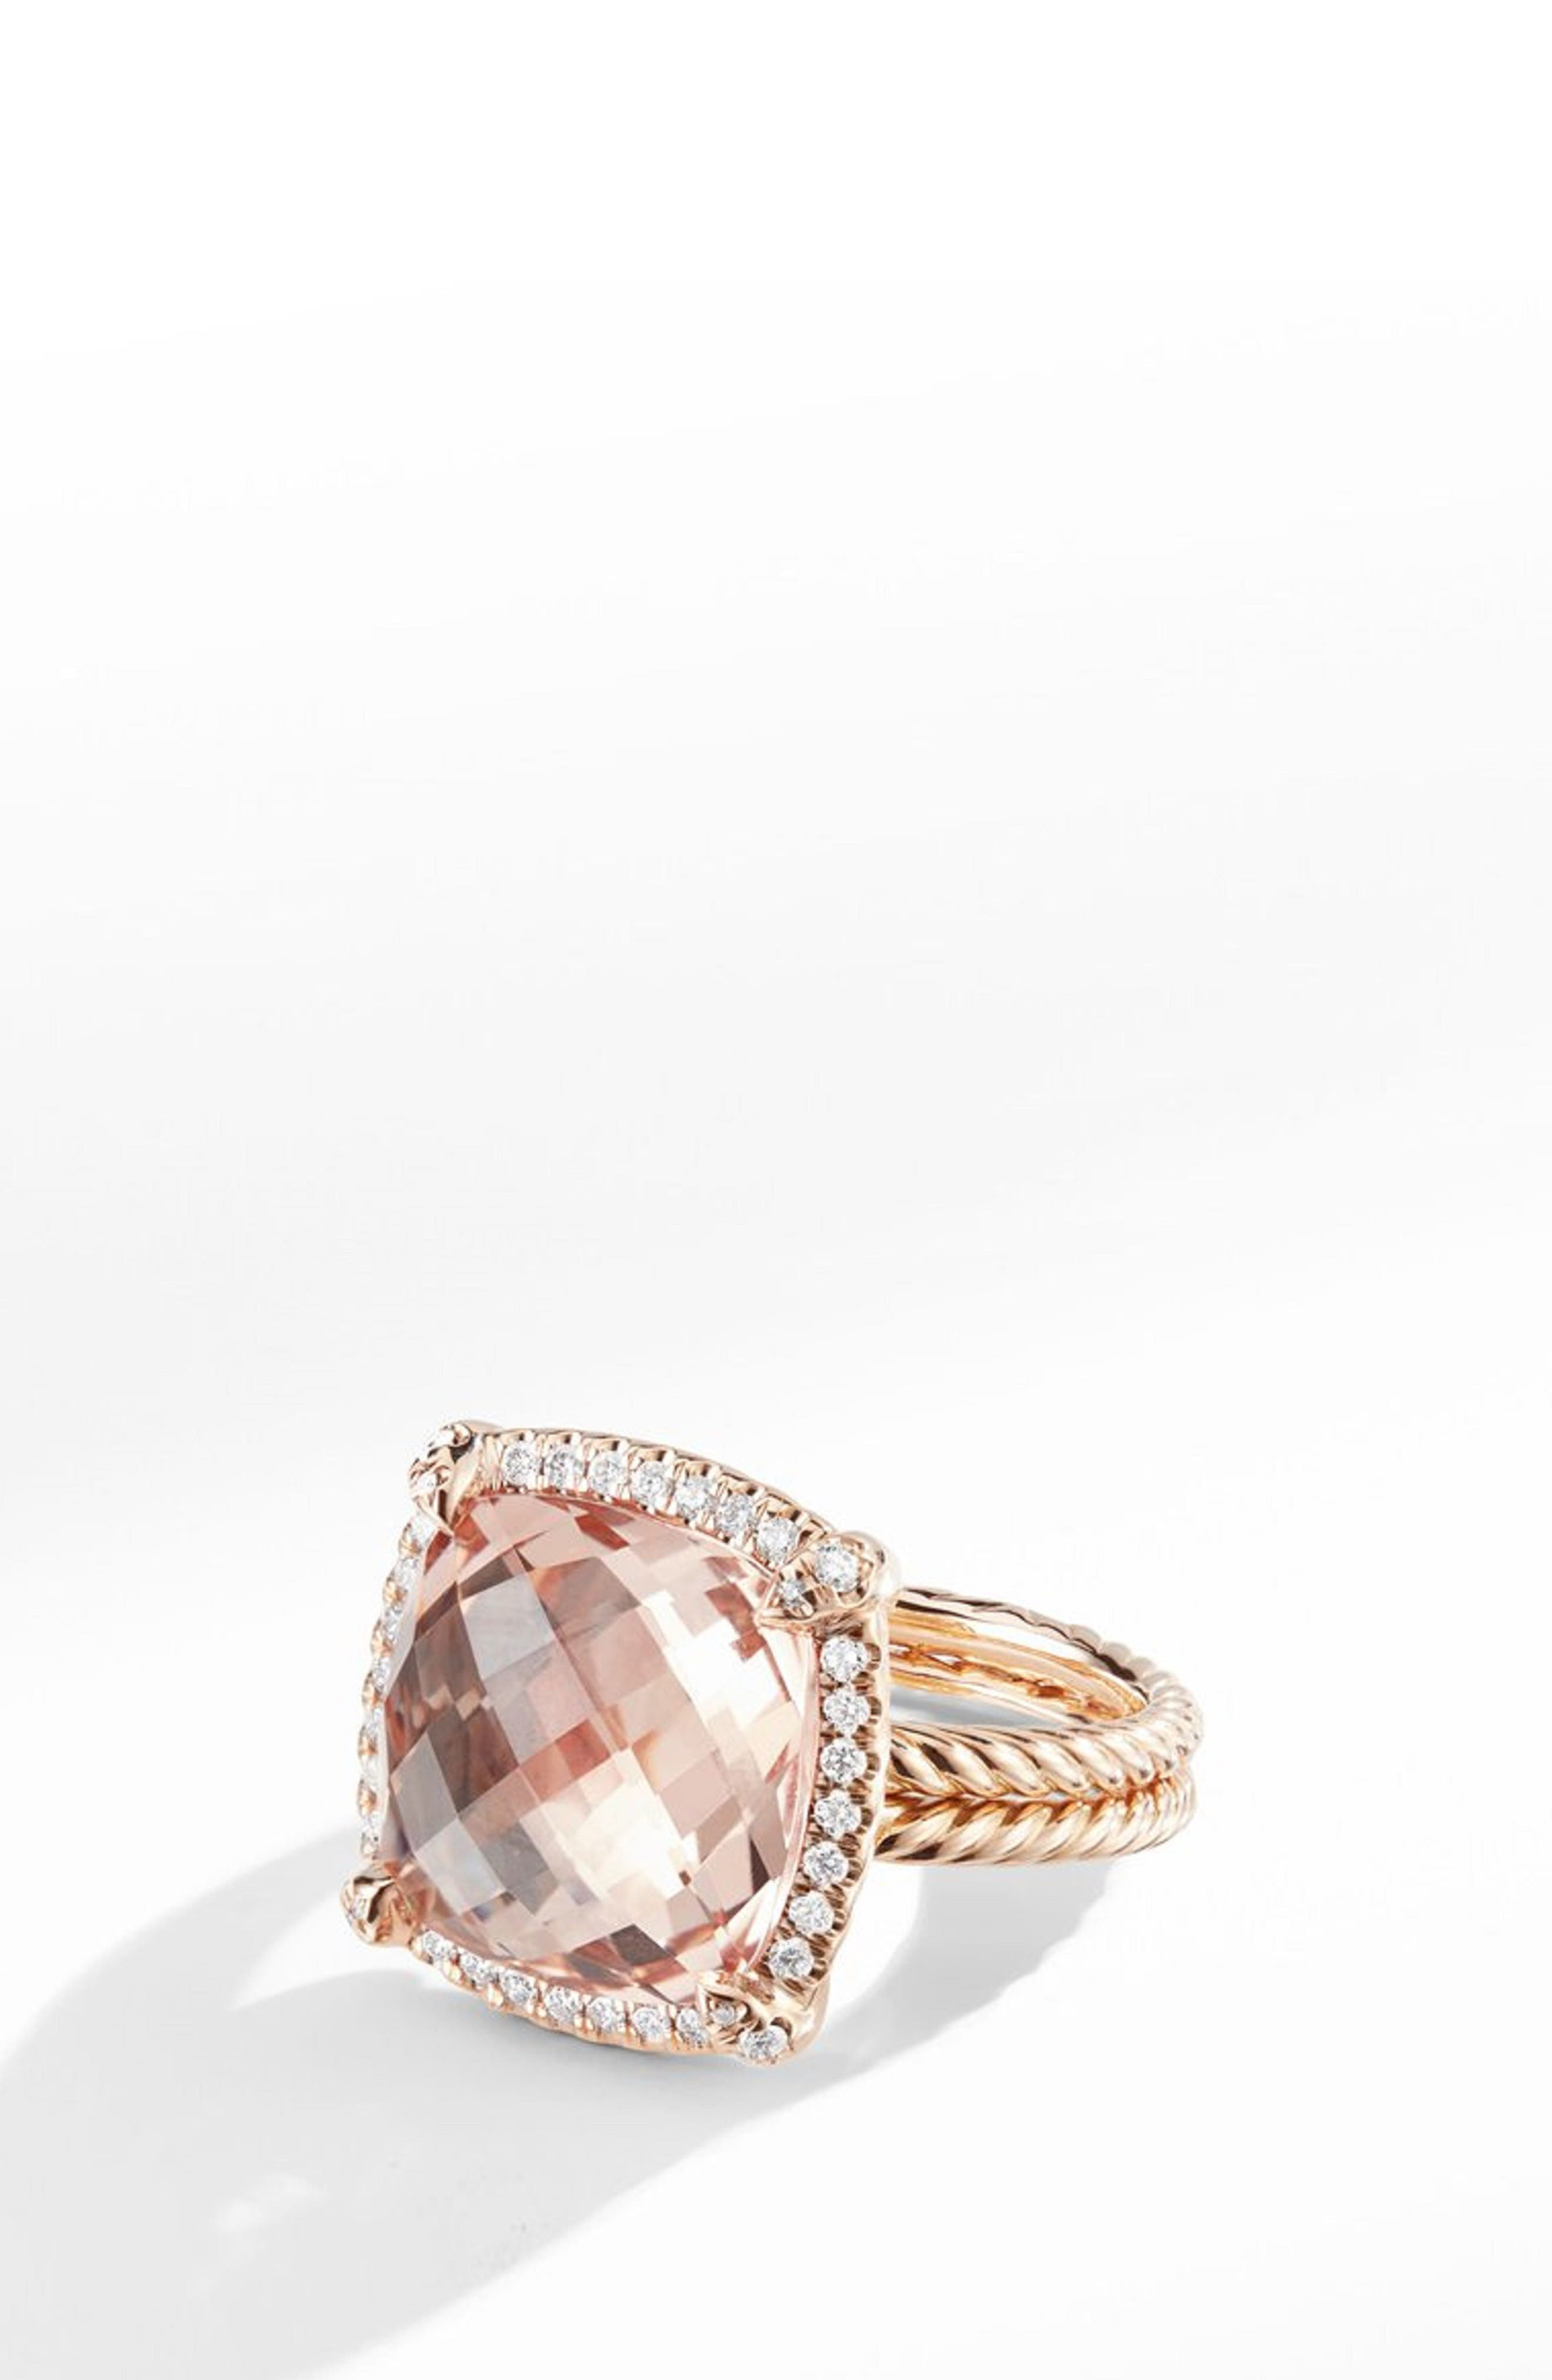 Chatelaine Pavé Bezel Ring in 18K Rose Gold with Morganite,                         Main,                         color, ROSE GOLD/ DIAMOND/ MORGANITE